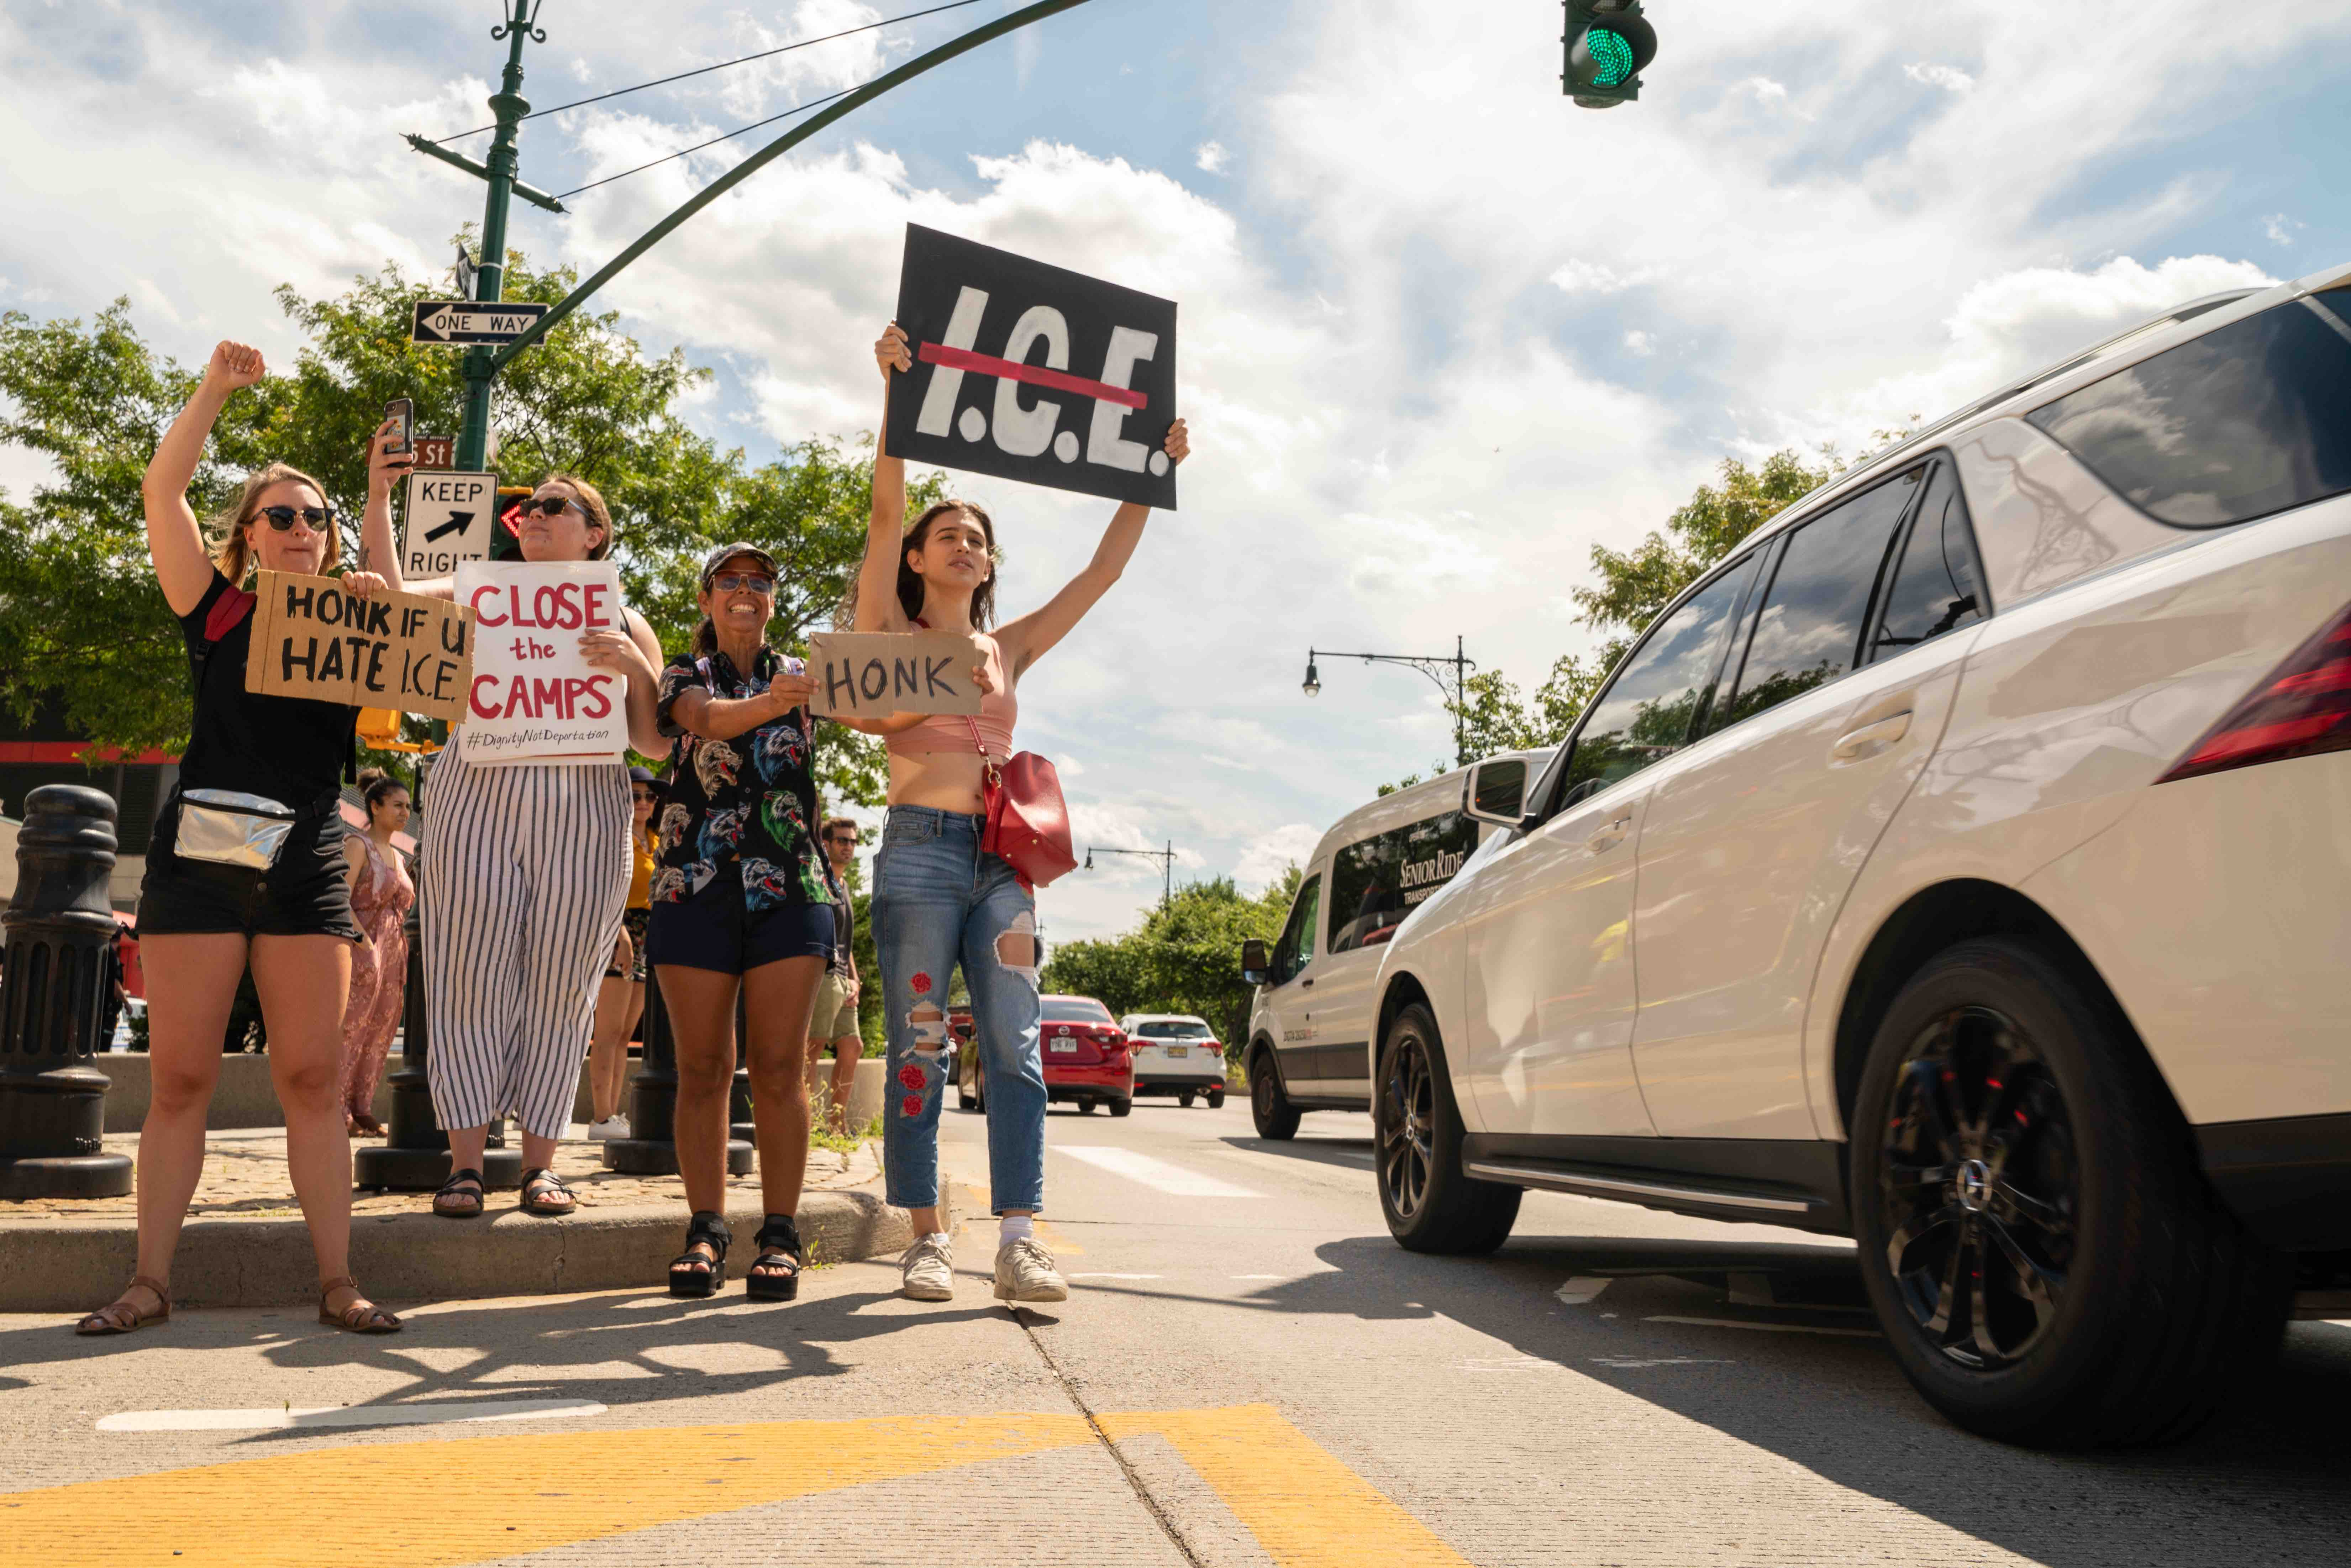 A Truck Reportedly Driven by a Prison Guard Drove Into a Group of ICE Protesters